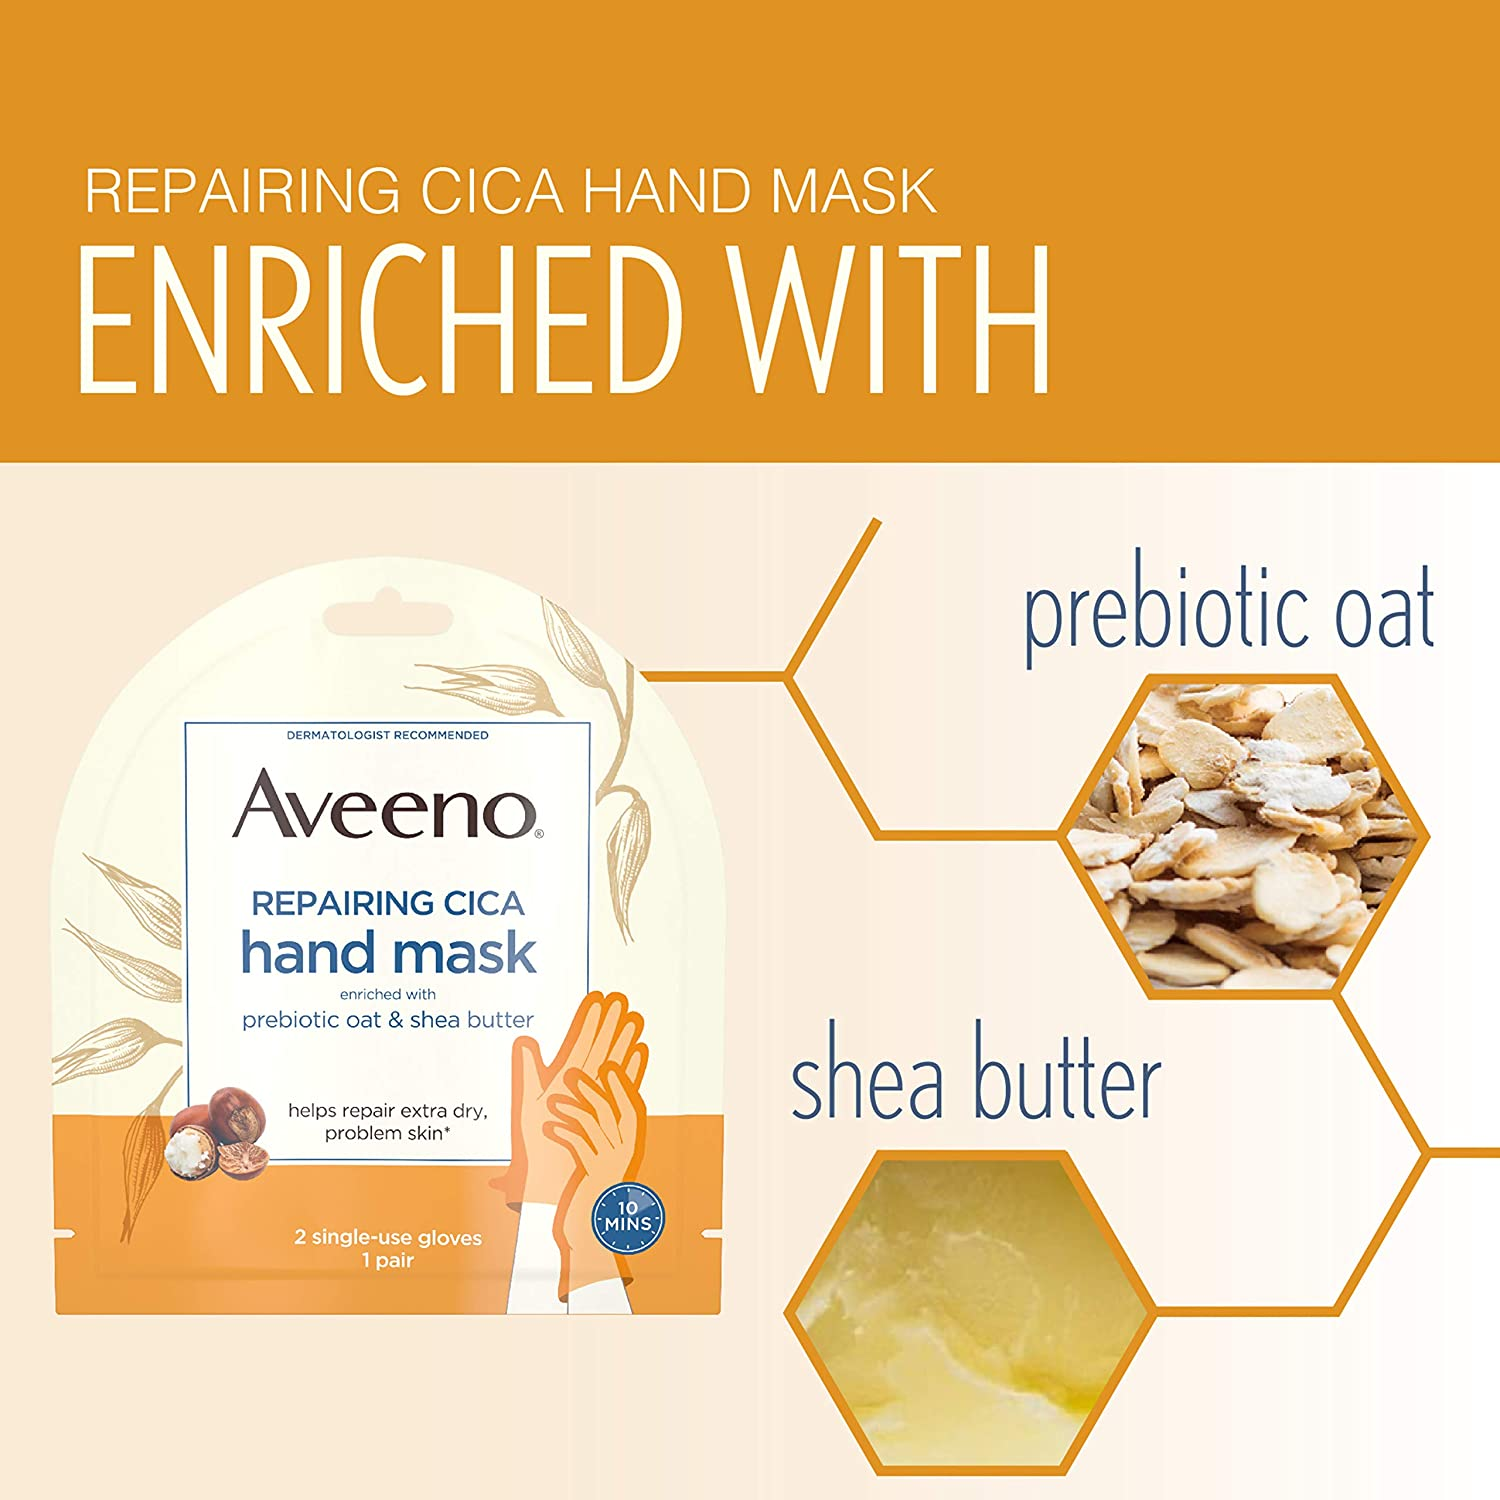 Aveeno Repairing CICA Hand Mask with Prebiotic Oat and Shea Butter for Extra Dry Skin, Paraben-Free and Fragrance-Free, 1 Pair of Single-Use Gloves : Beauty